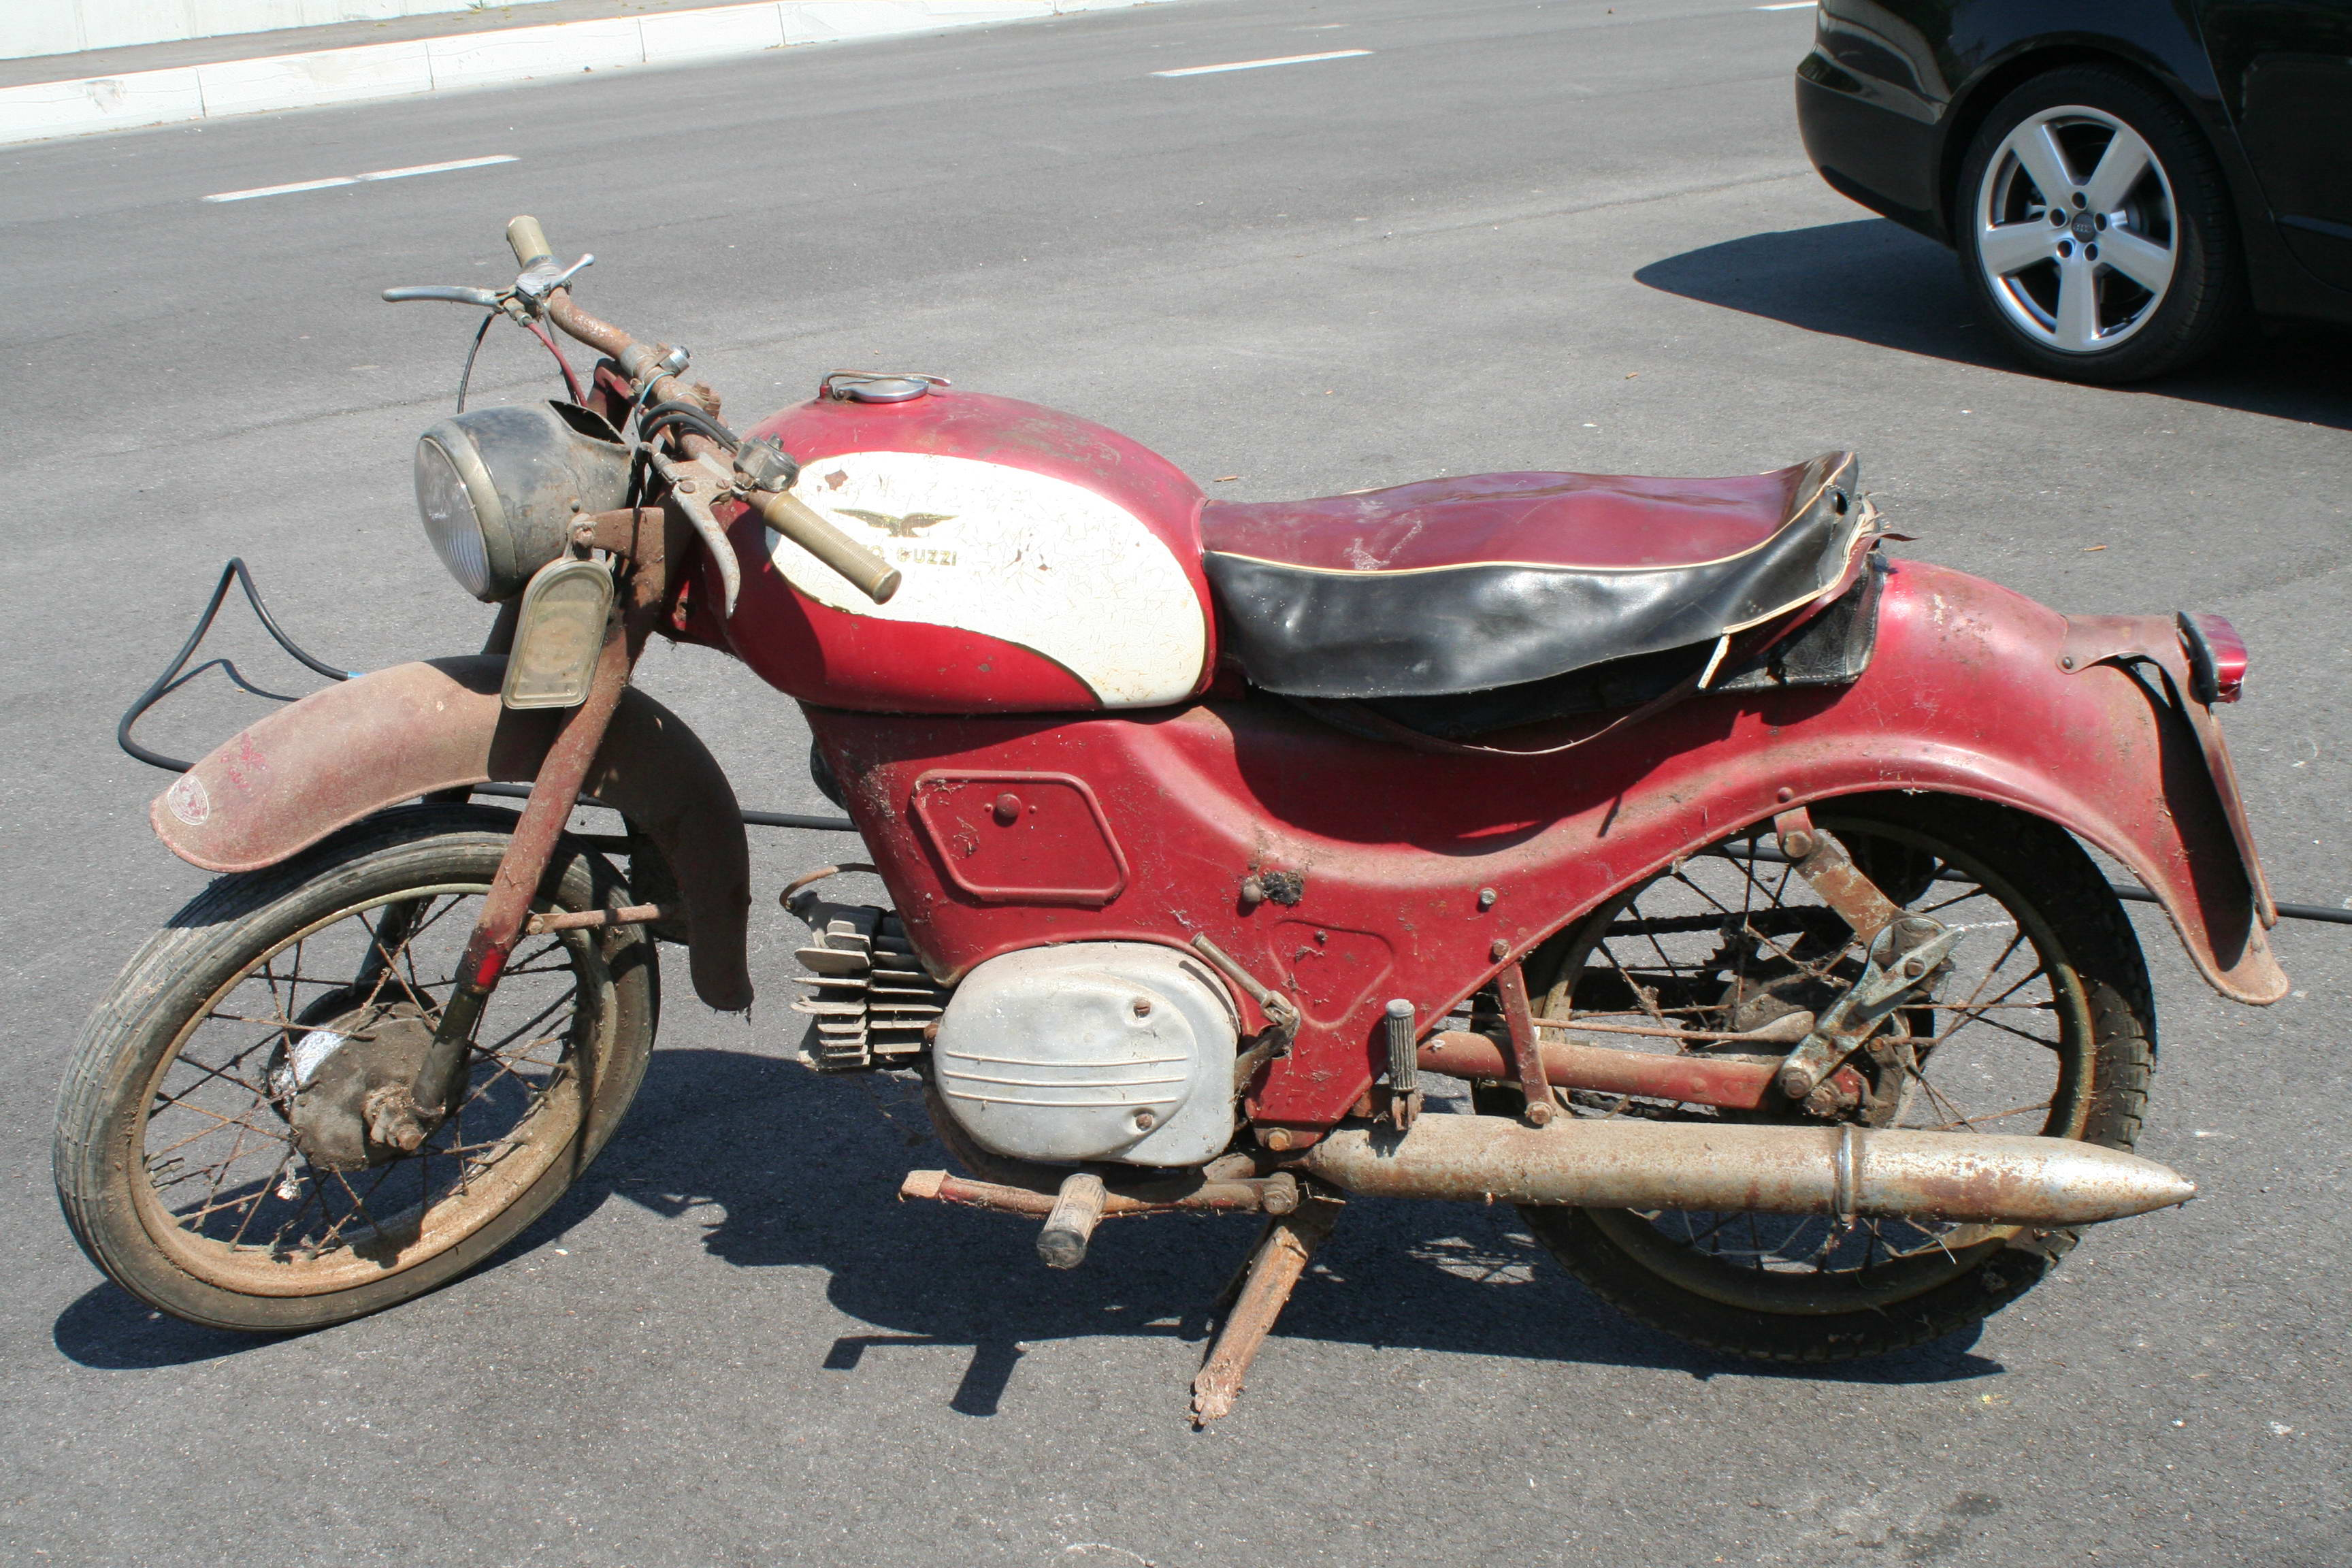 Moto guzzi zigolo photo - 2